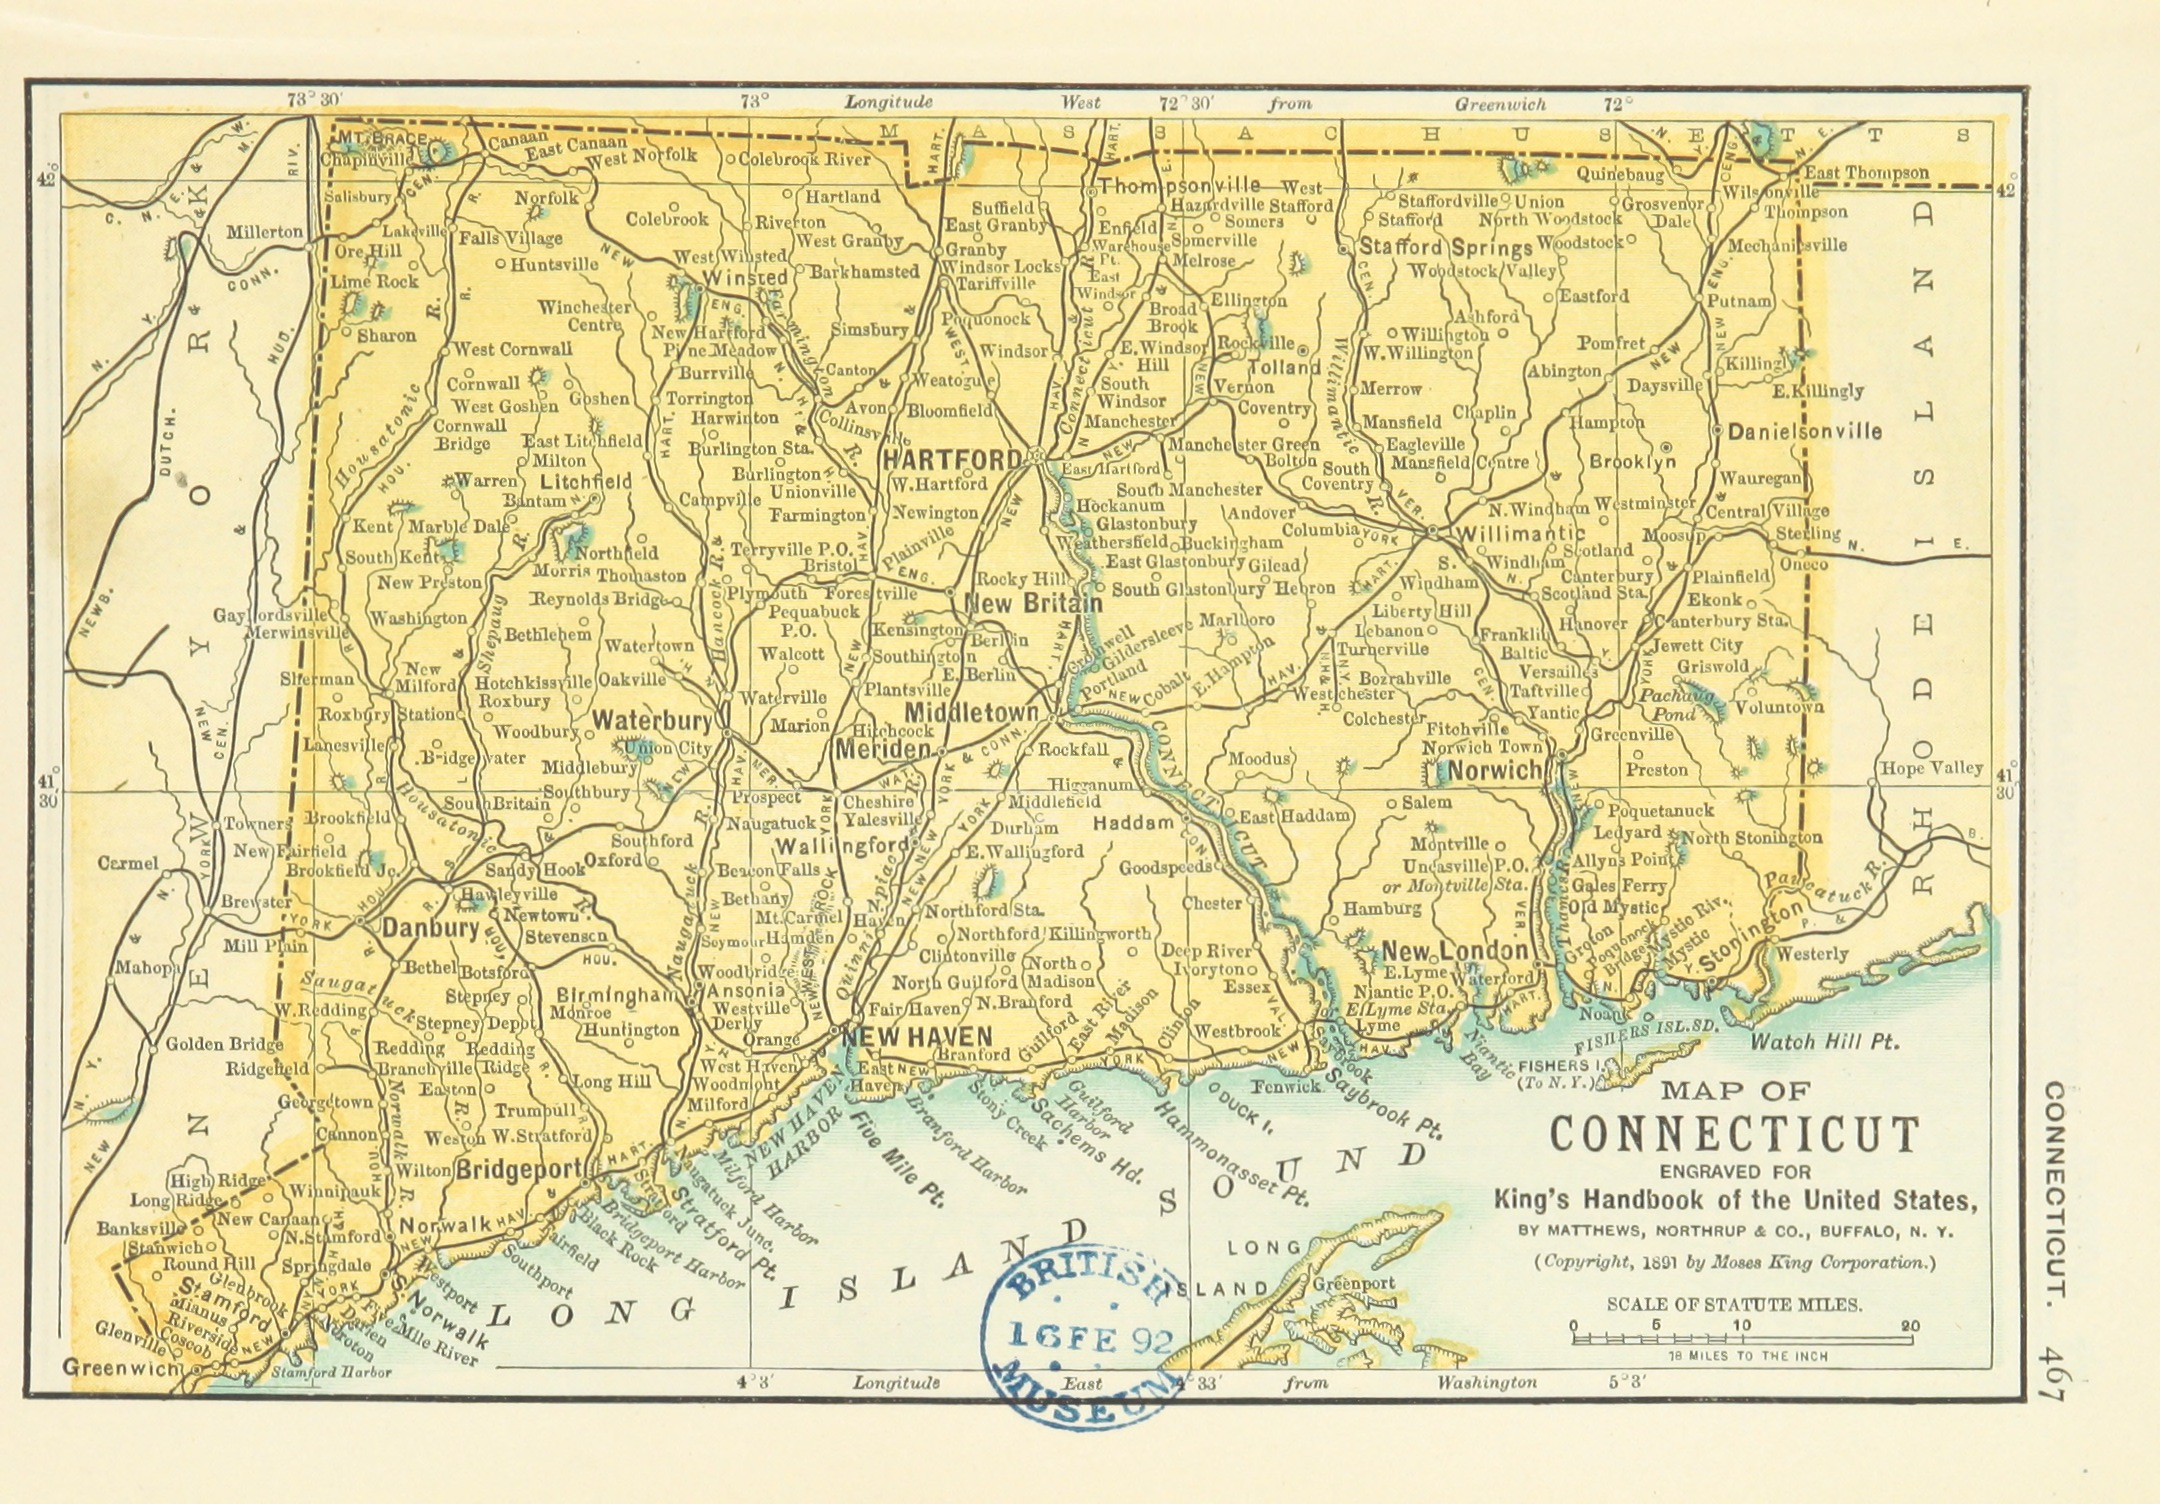 File:US-MAPS(1891) p469 - MAP OF CONNECTICUT.jpg - Wikimedia Commons